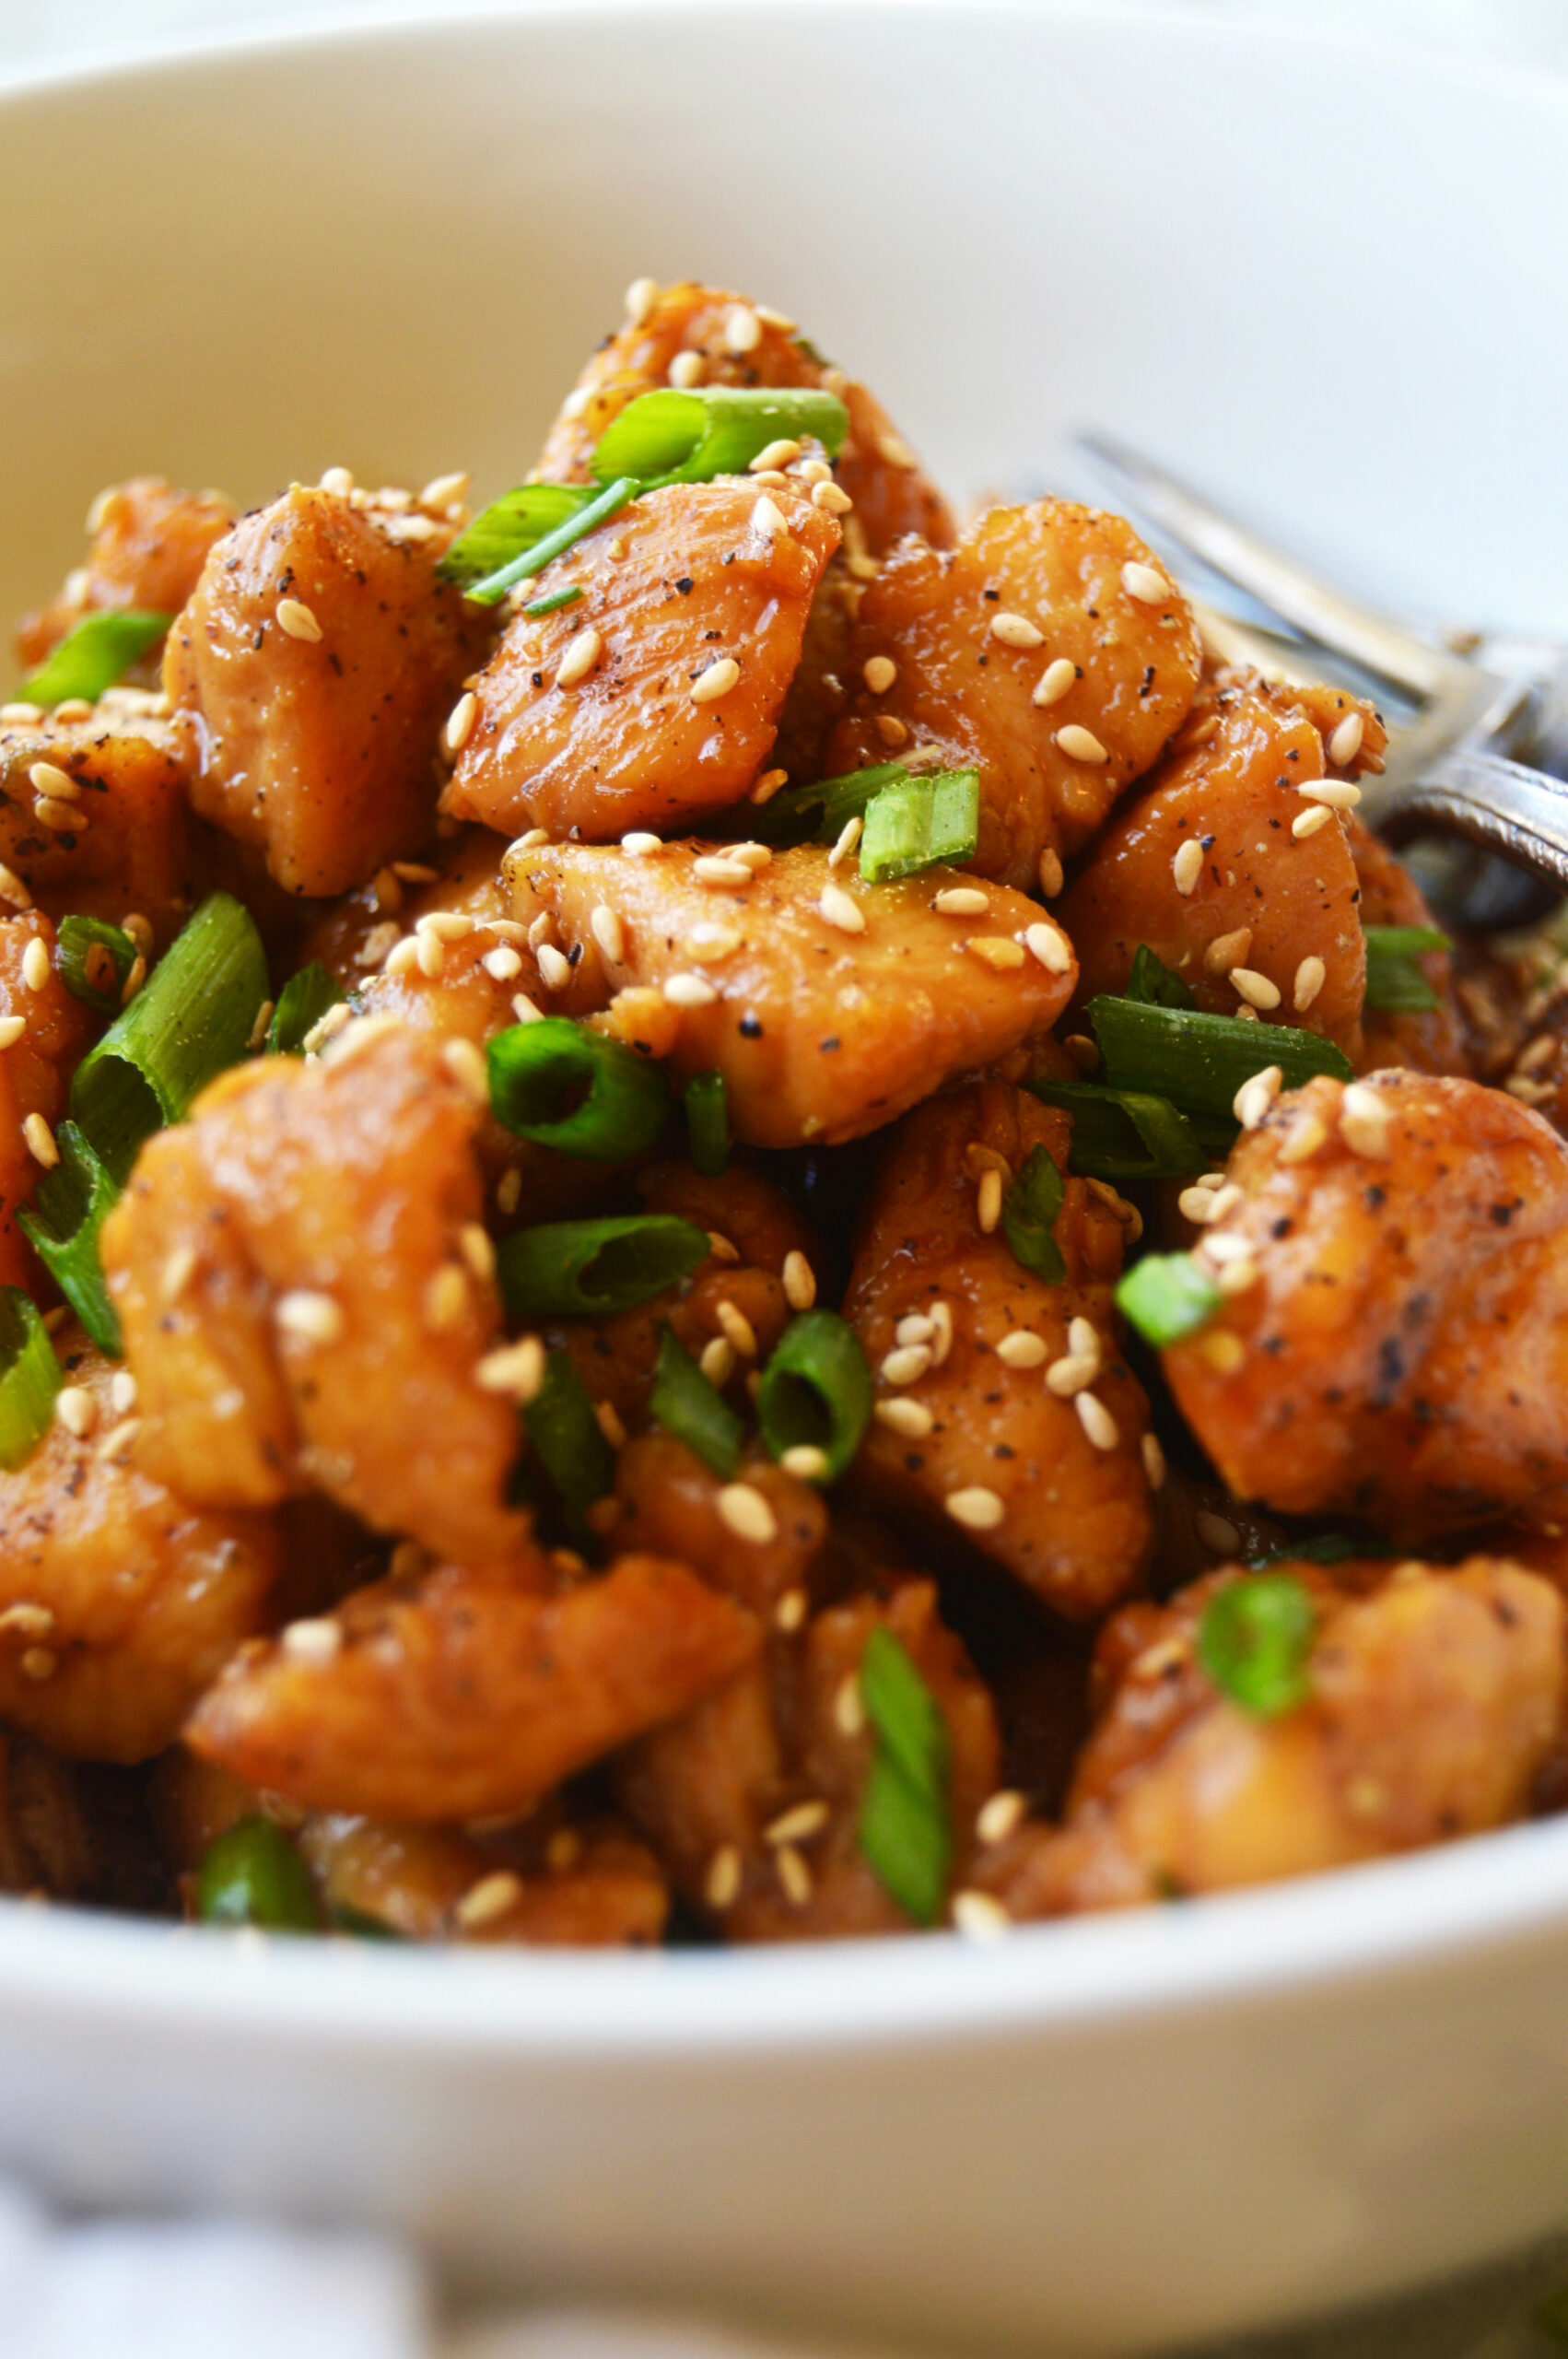 Quick And Simple 5 Ingredient Teriyaki Chicken - Quick Recipes Chicken